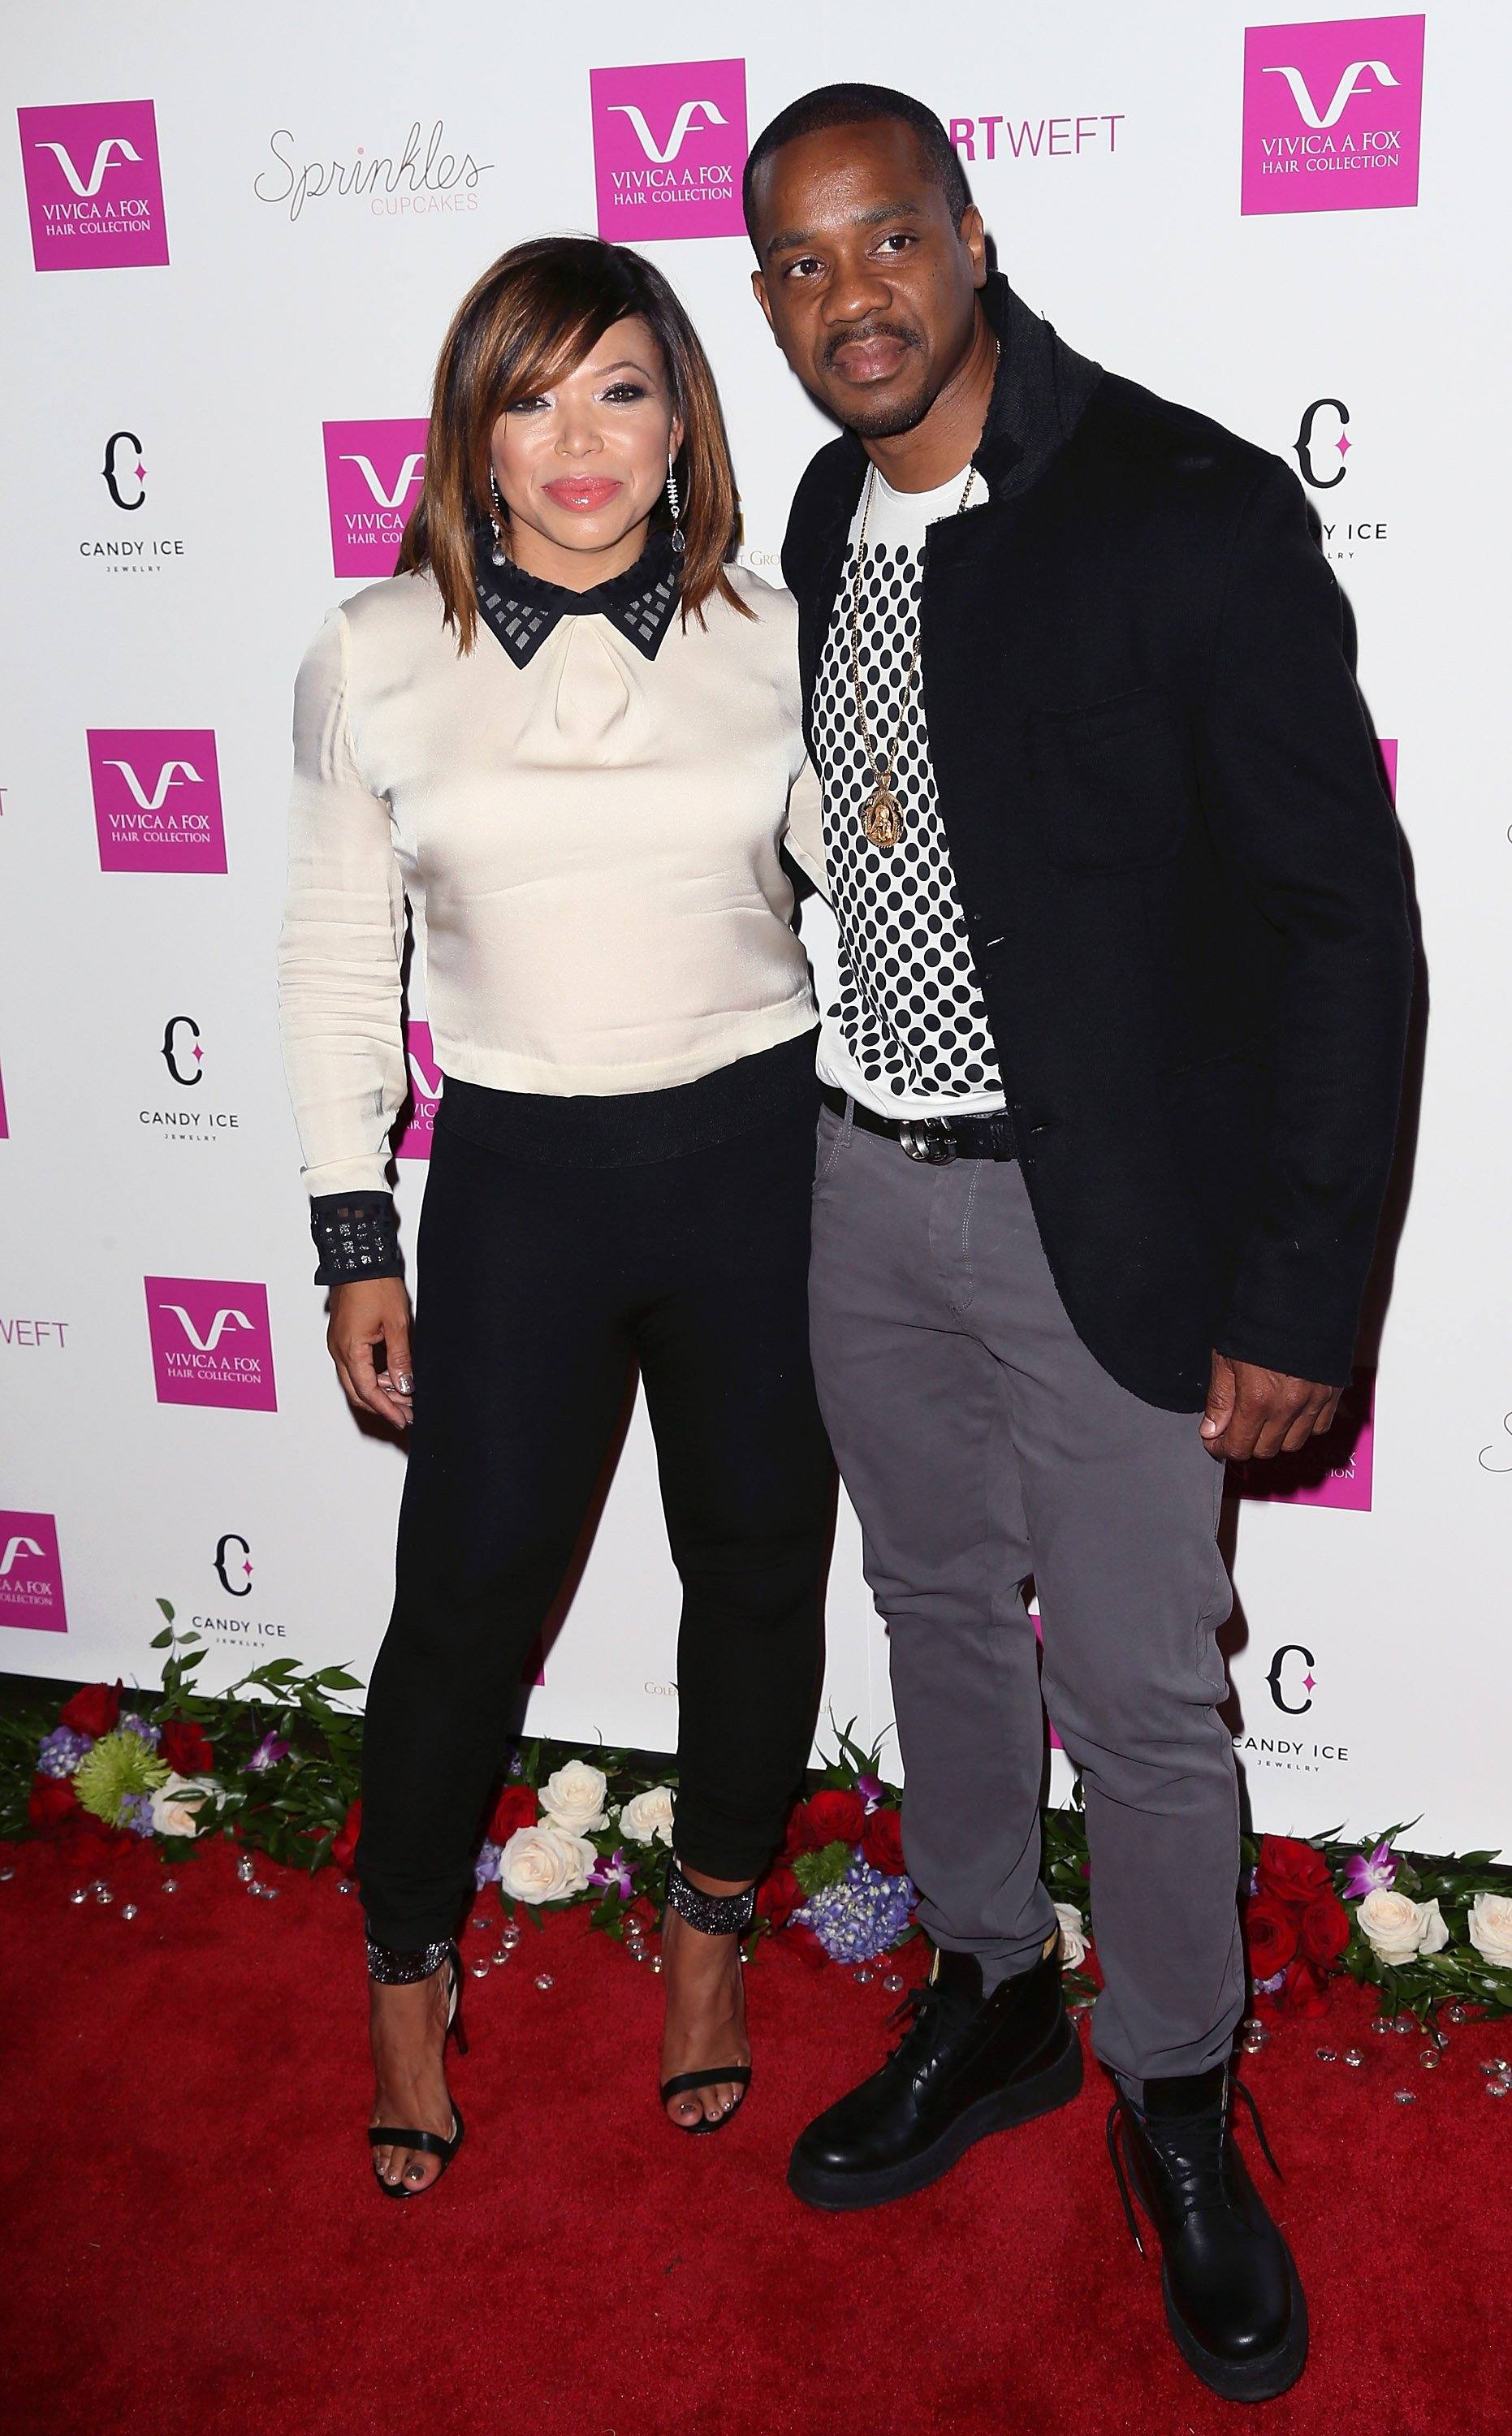 Tisha Campbell and Duane Martin attending the Vivica A. Fox 50th birthday celebration at Philippe Chow on August 2, 2014. | Photo: GettyImages